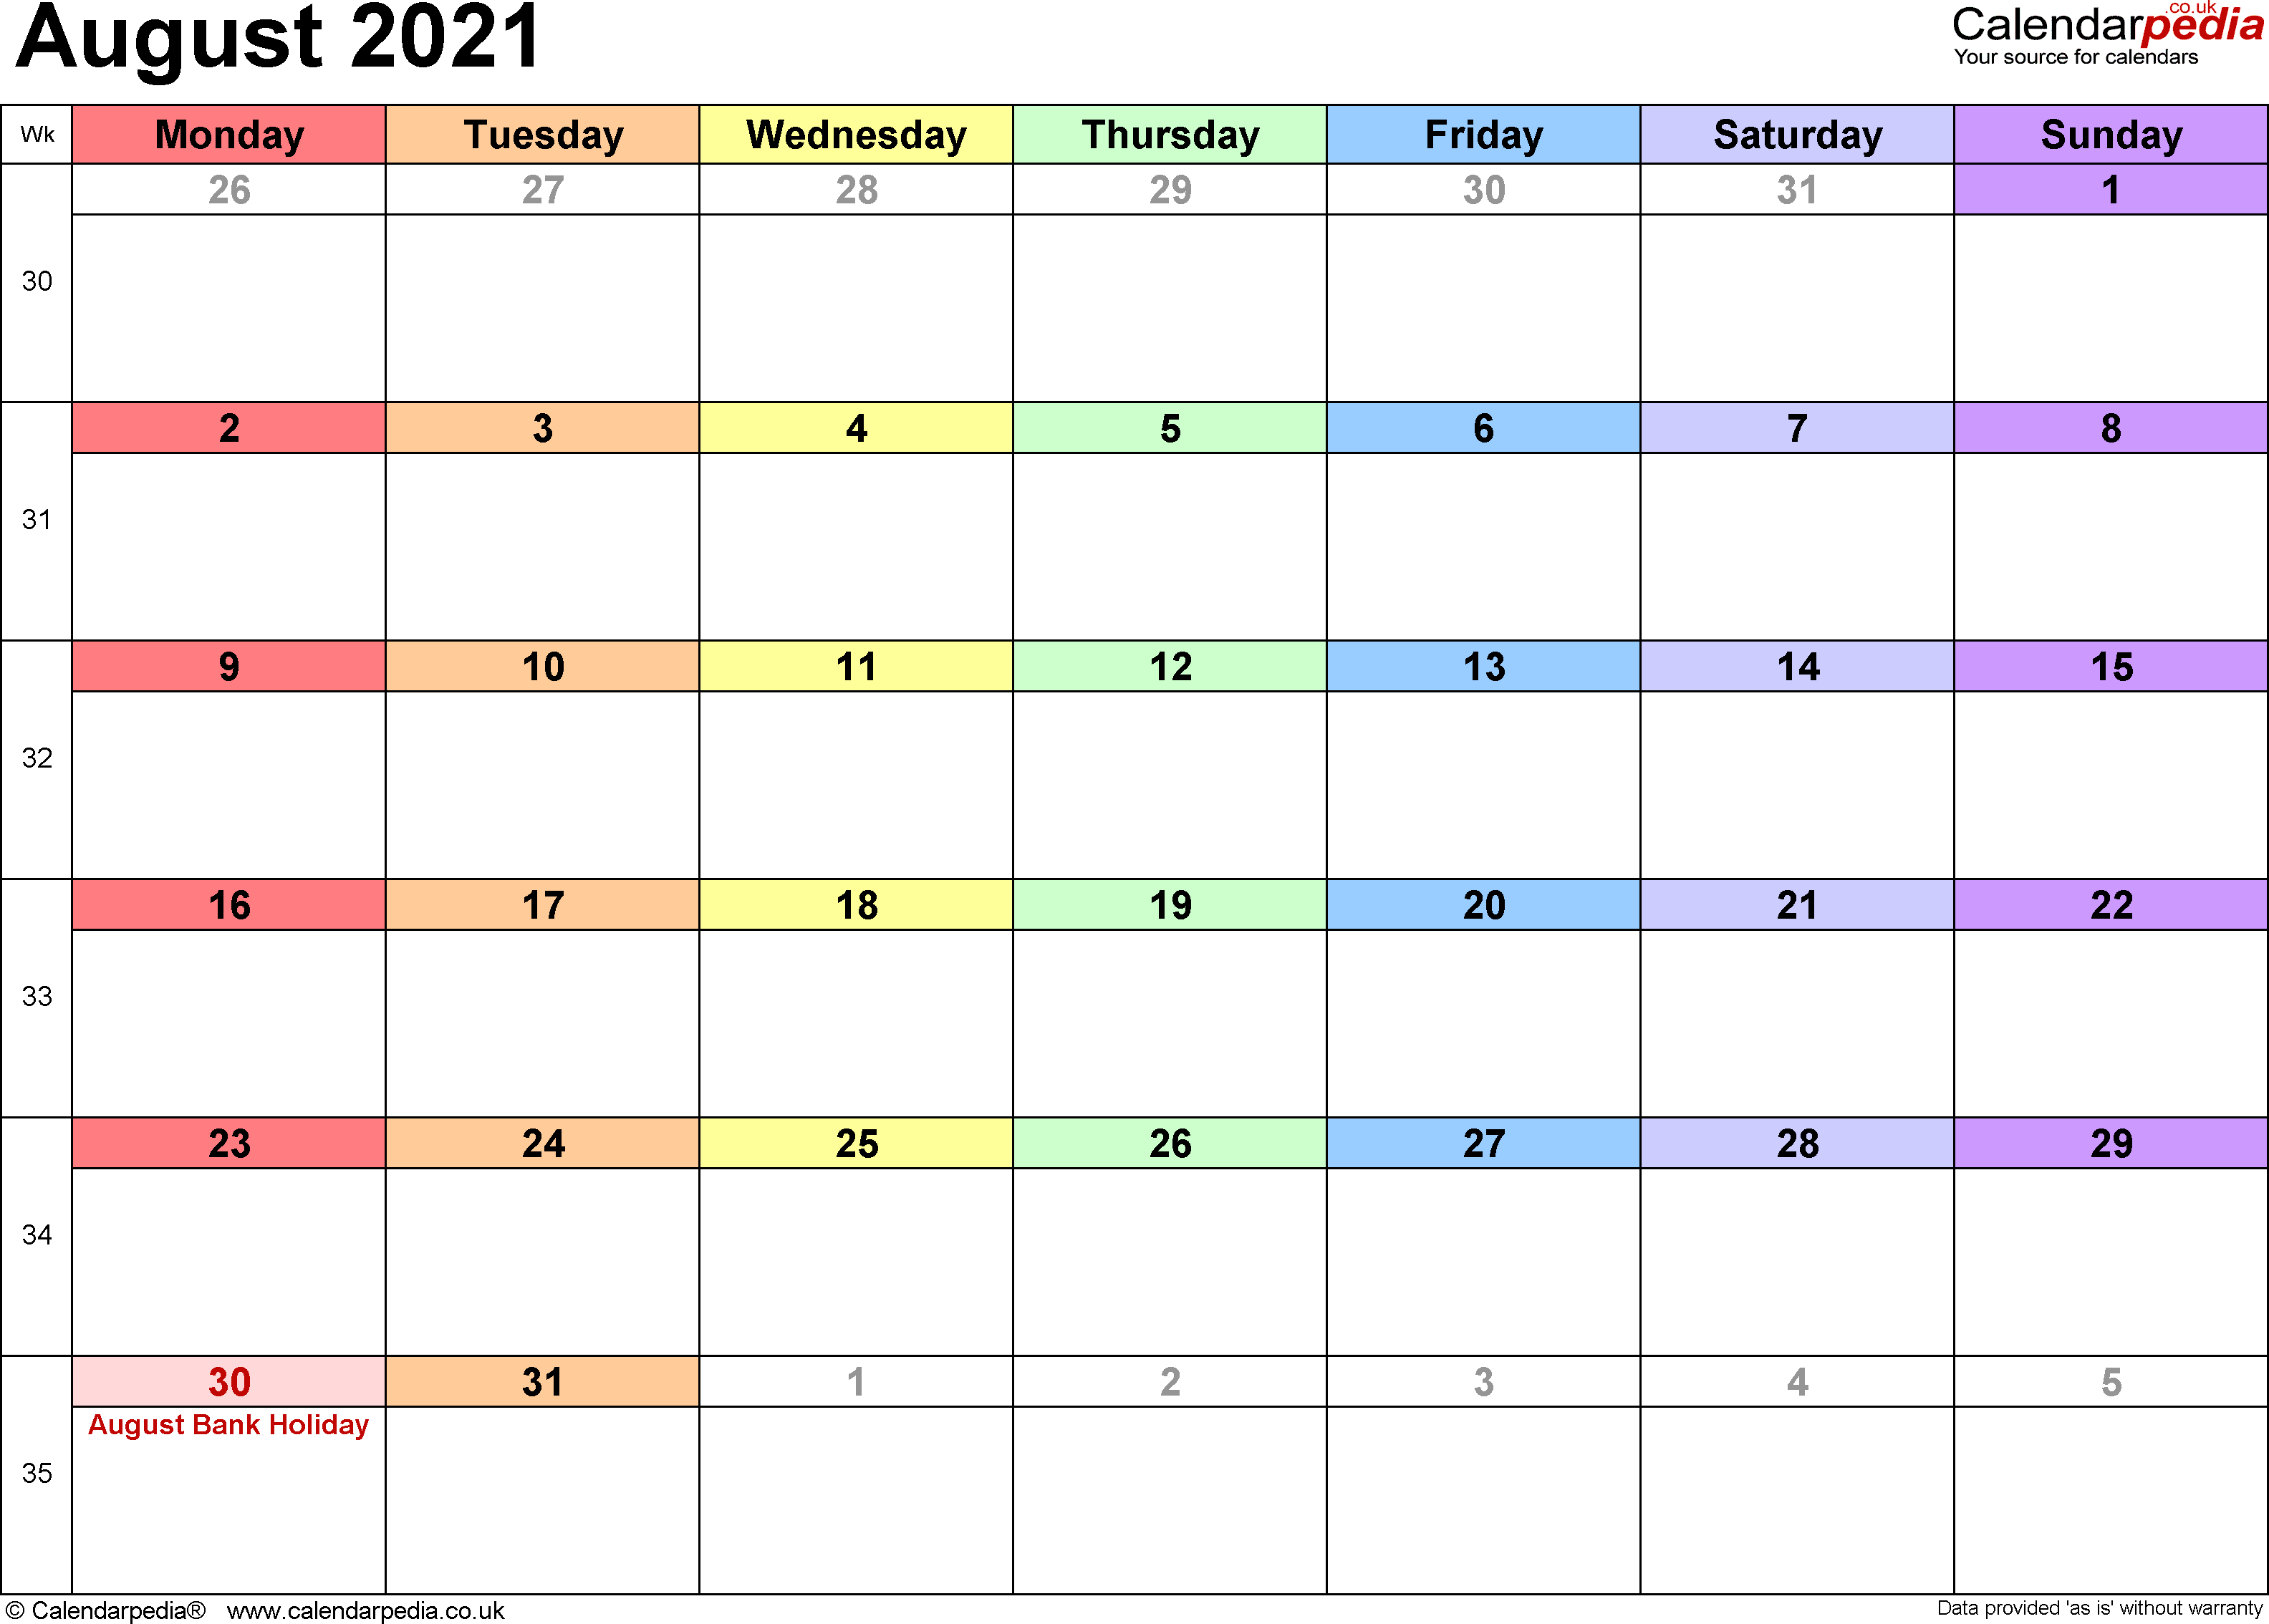 Calendar August 2021, landscape orientation, 1 page, with UK bank holidays and week numbers